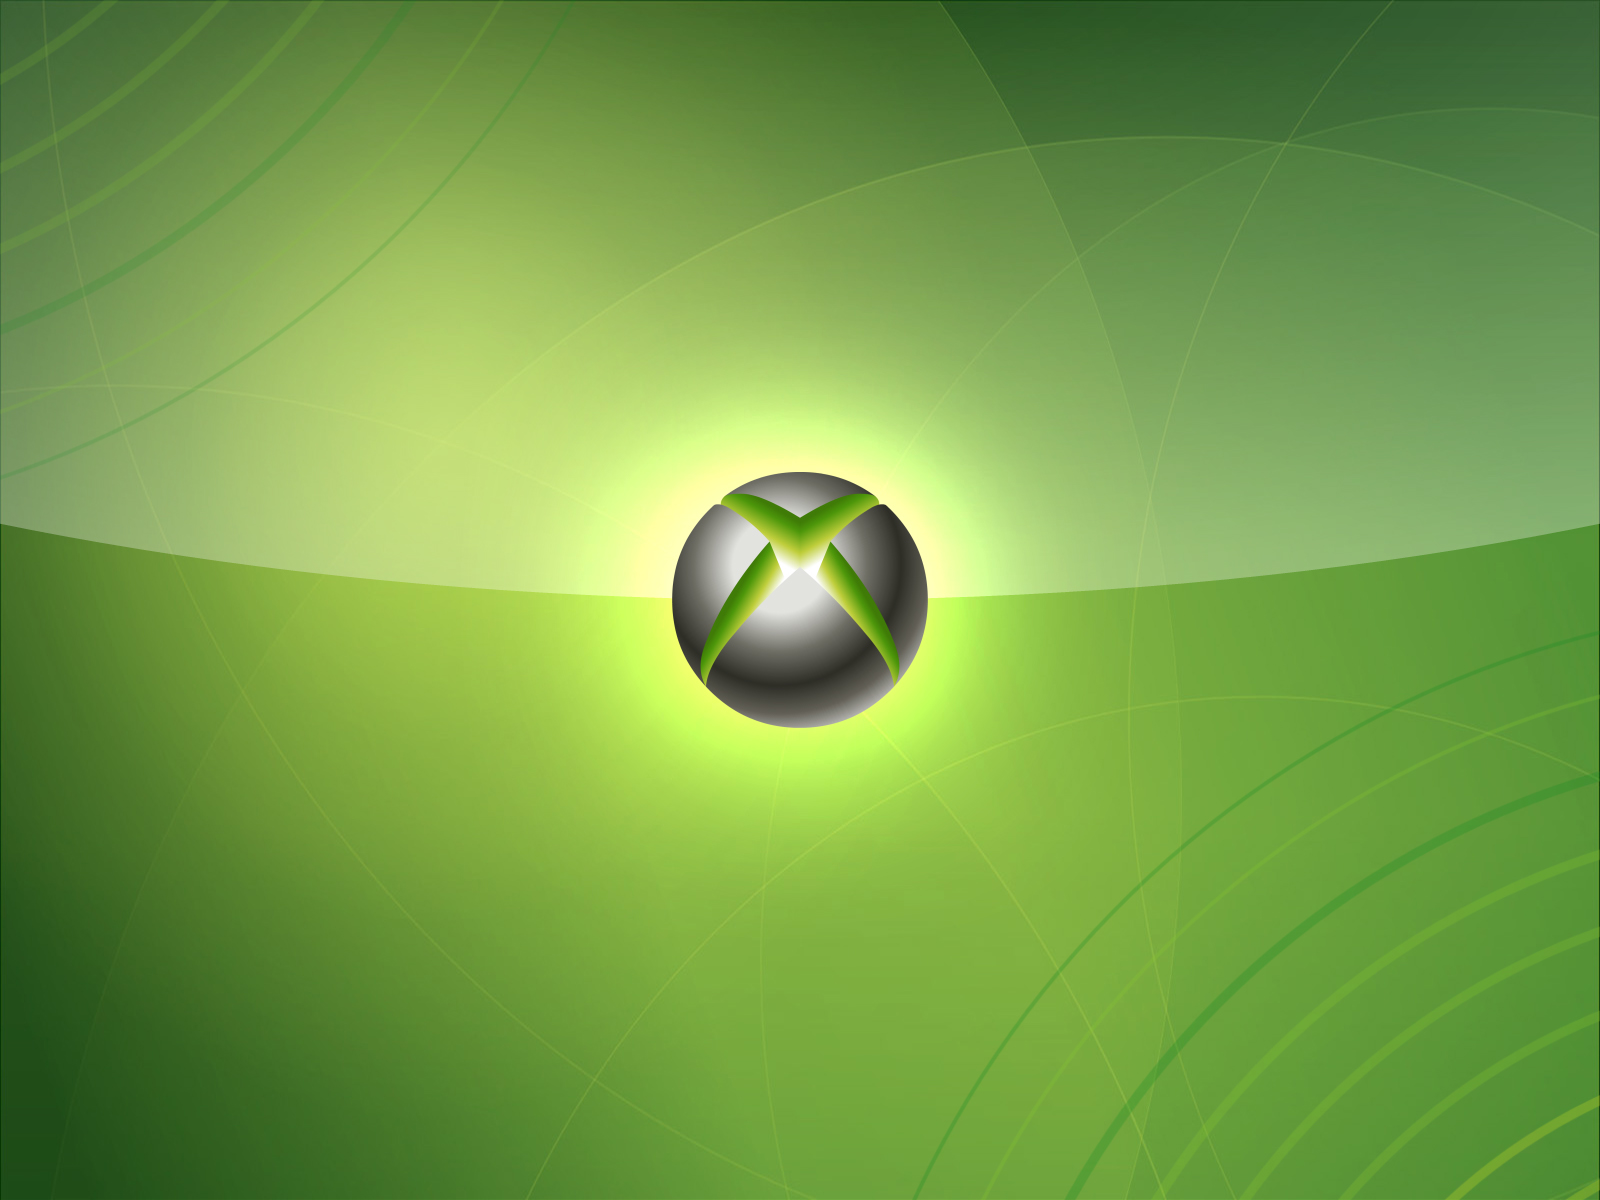 Xbox360 Green And Black HD Wallpapers